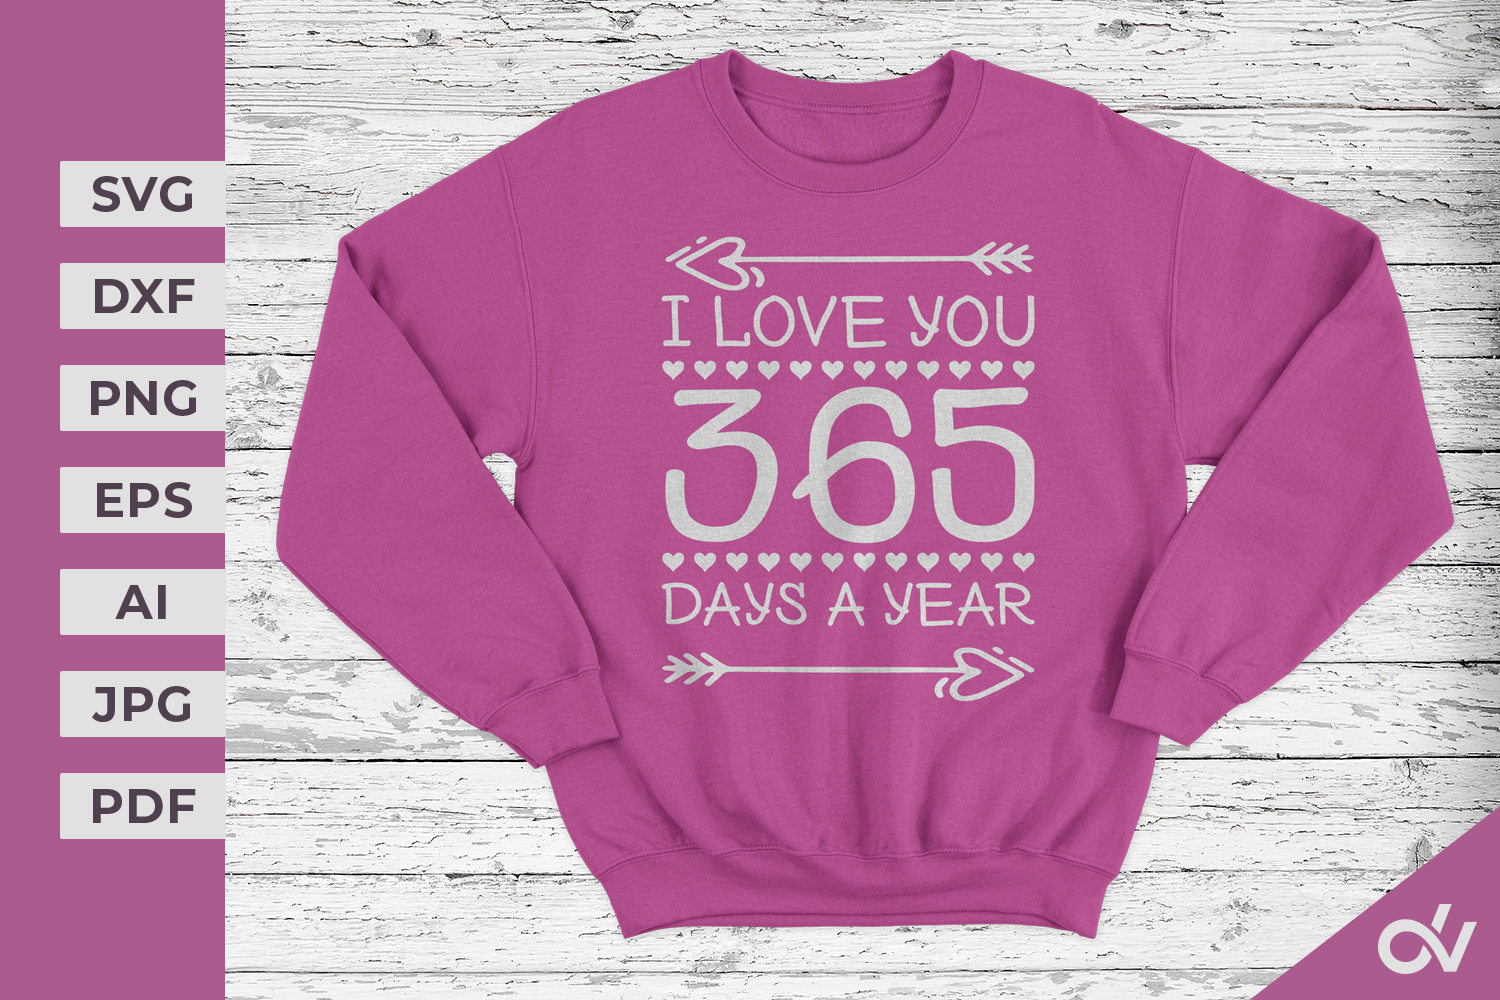 I Love You 365 Days - Valentines SVG example image 1